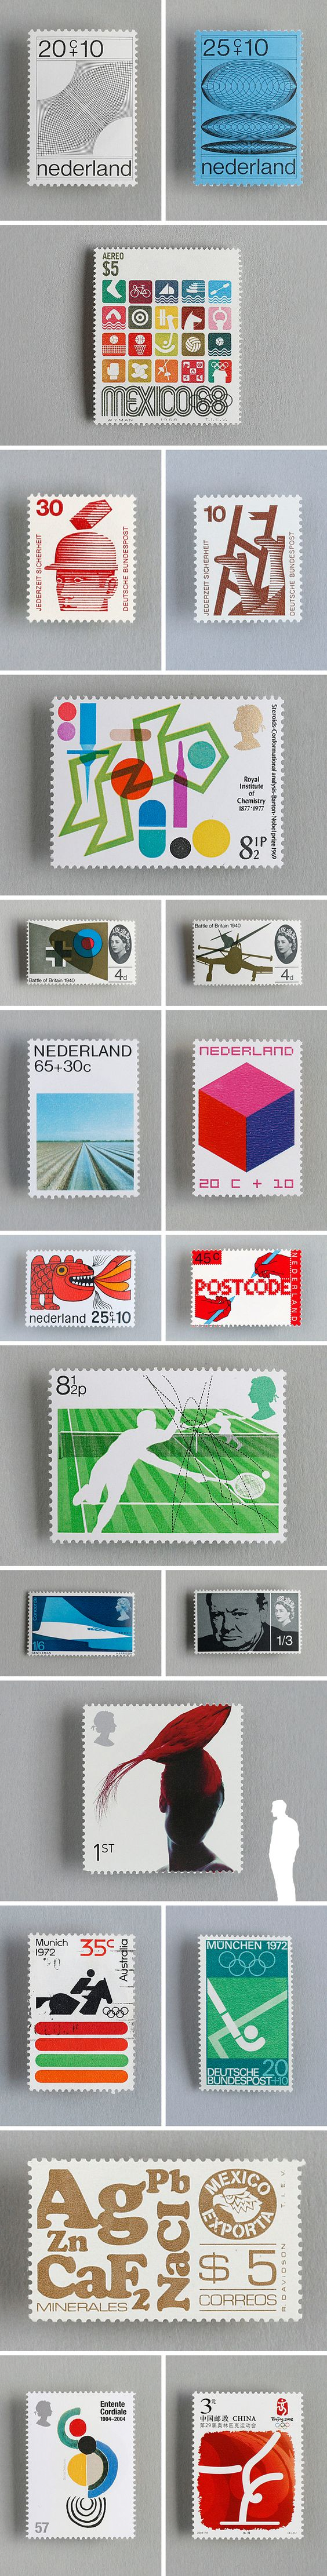 The Olympics seems to bring out the best in stamp designers over recent times — and looking back I can see what a powerful visual record they are and what a loss it will be when digital eventually brings the end of 'snail mail'.